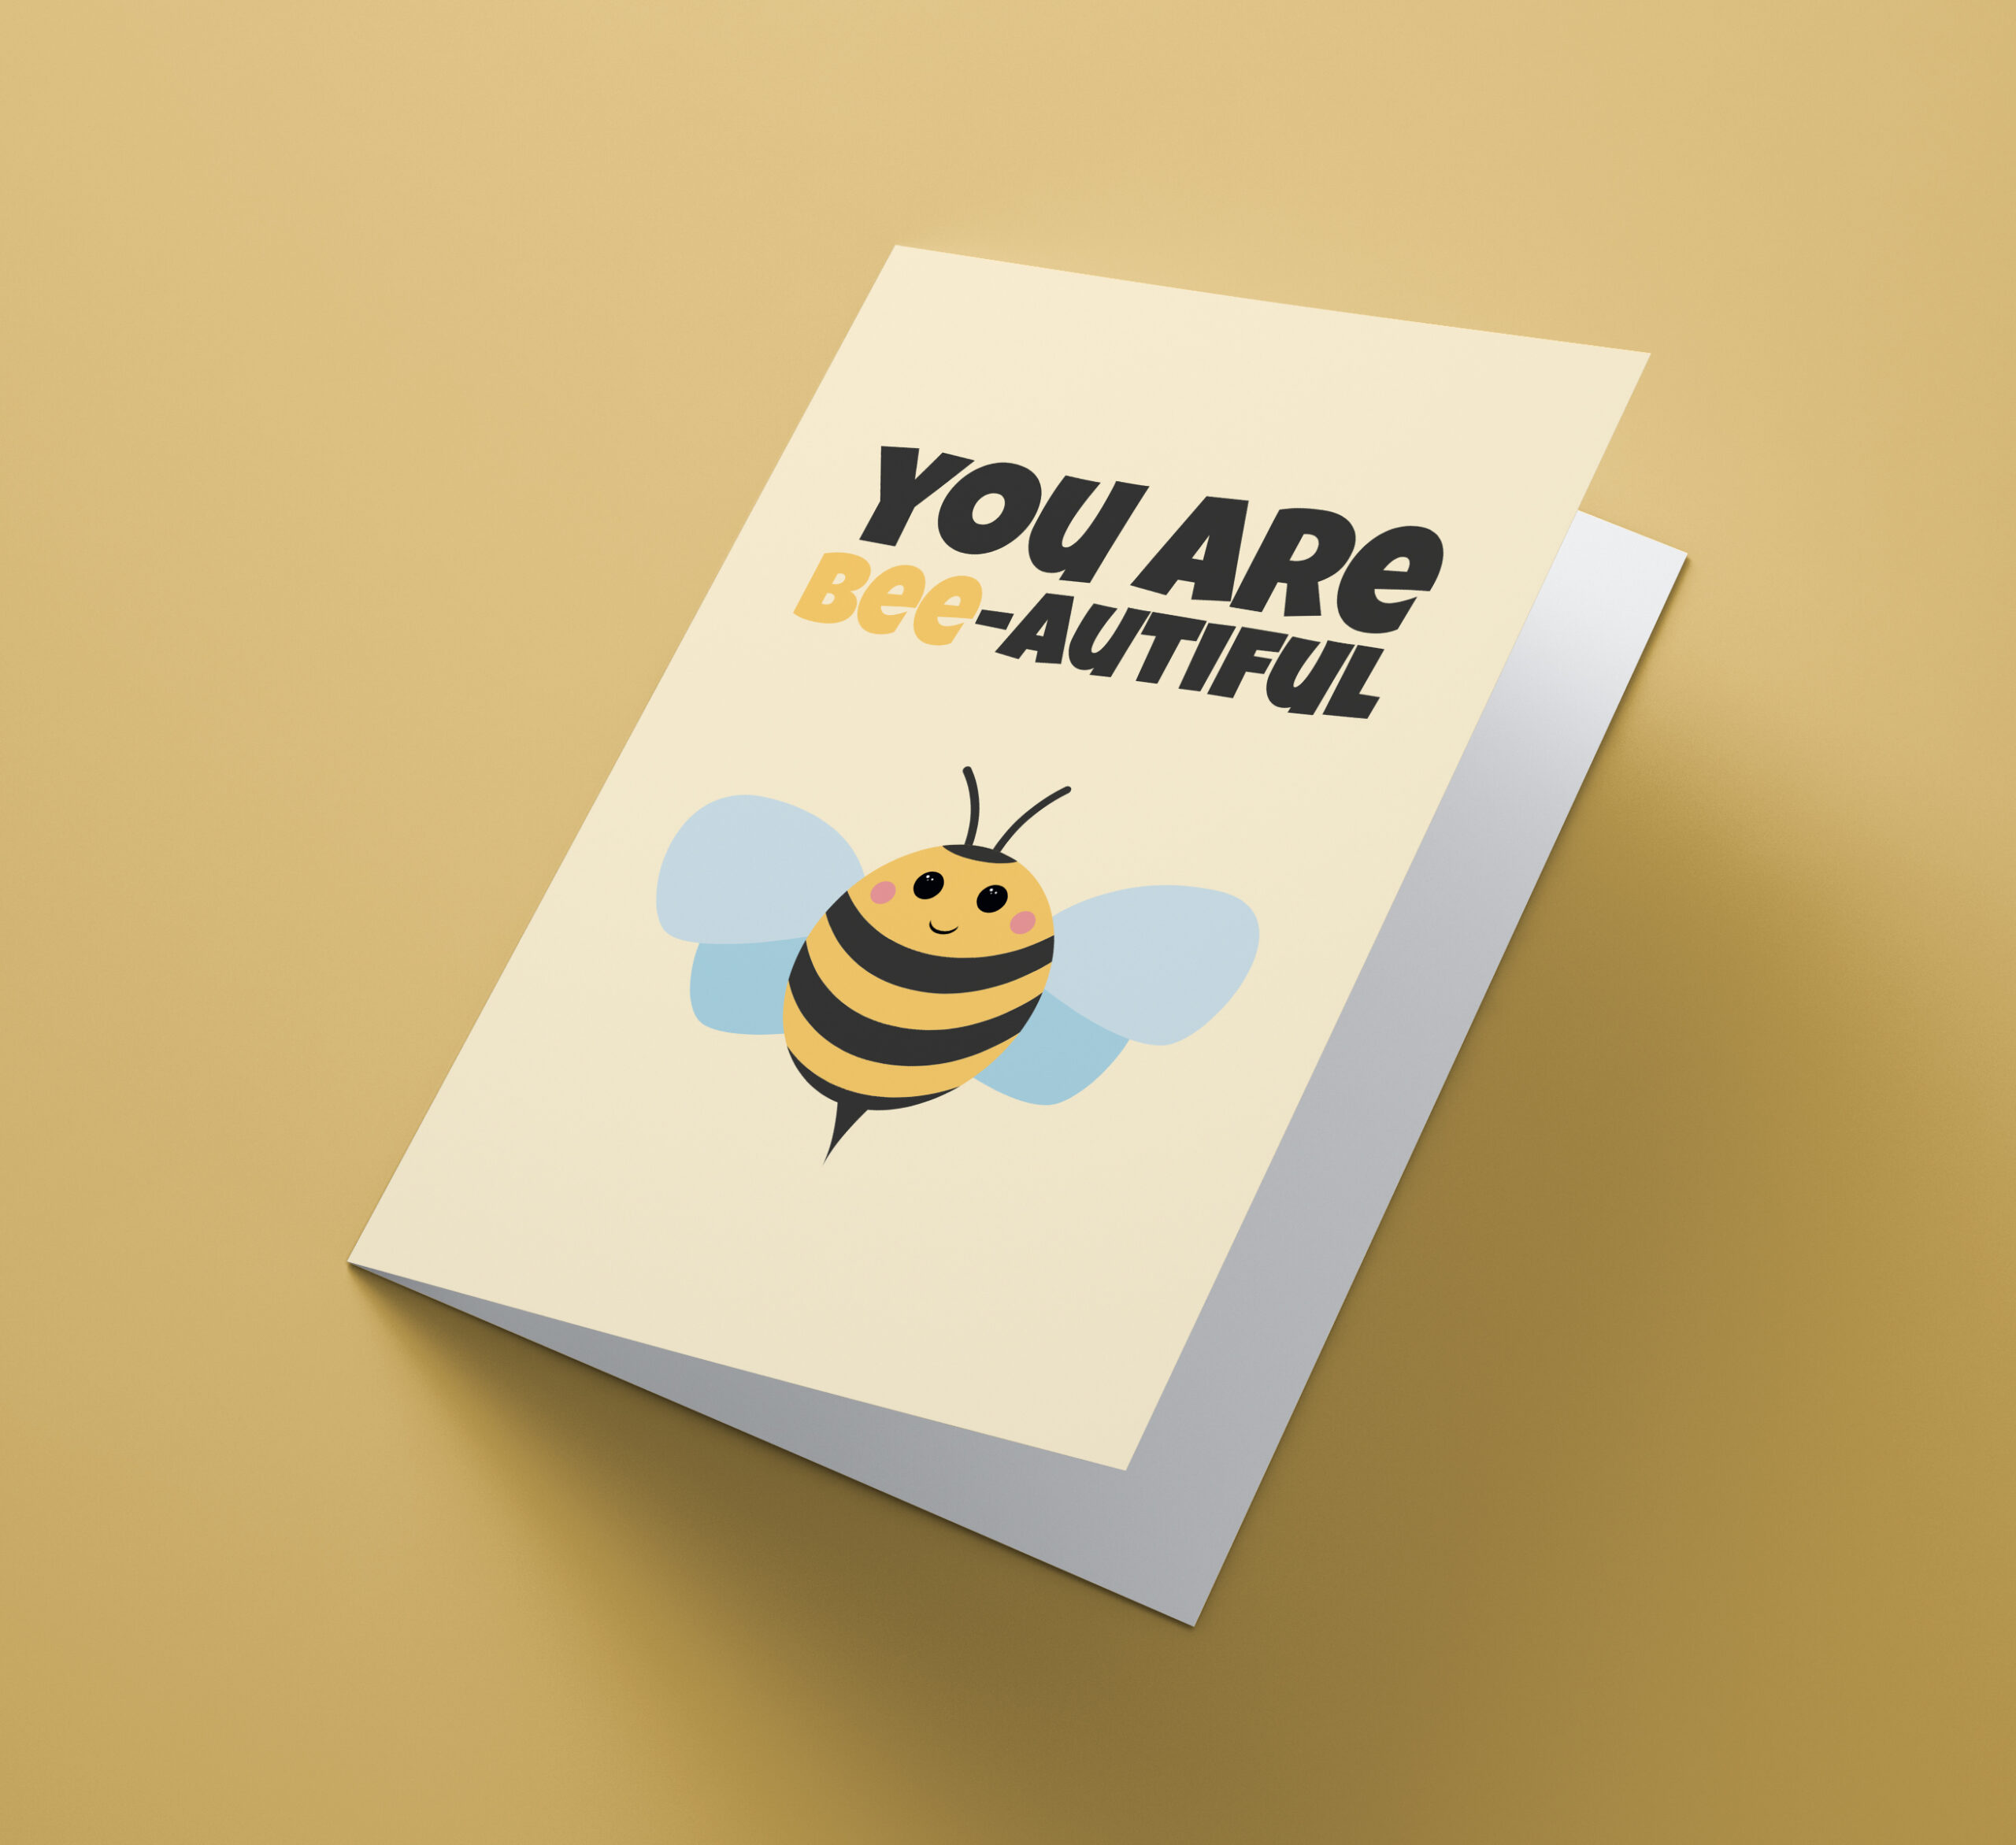 You Are Bee-autiful